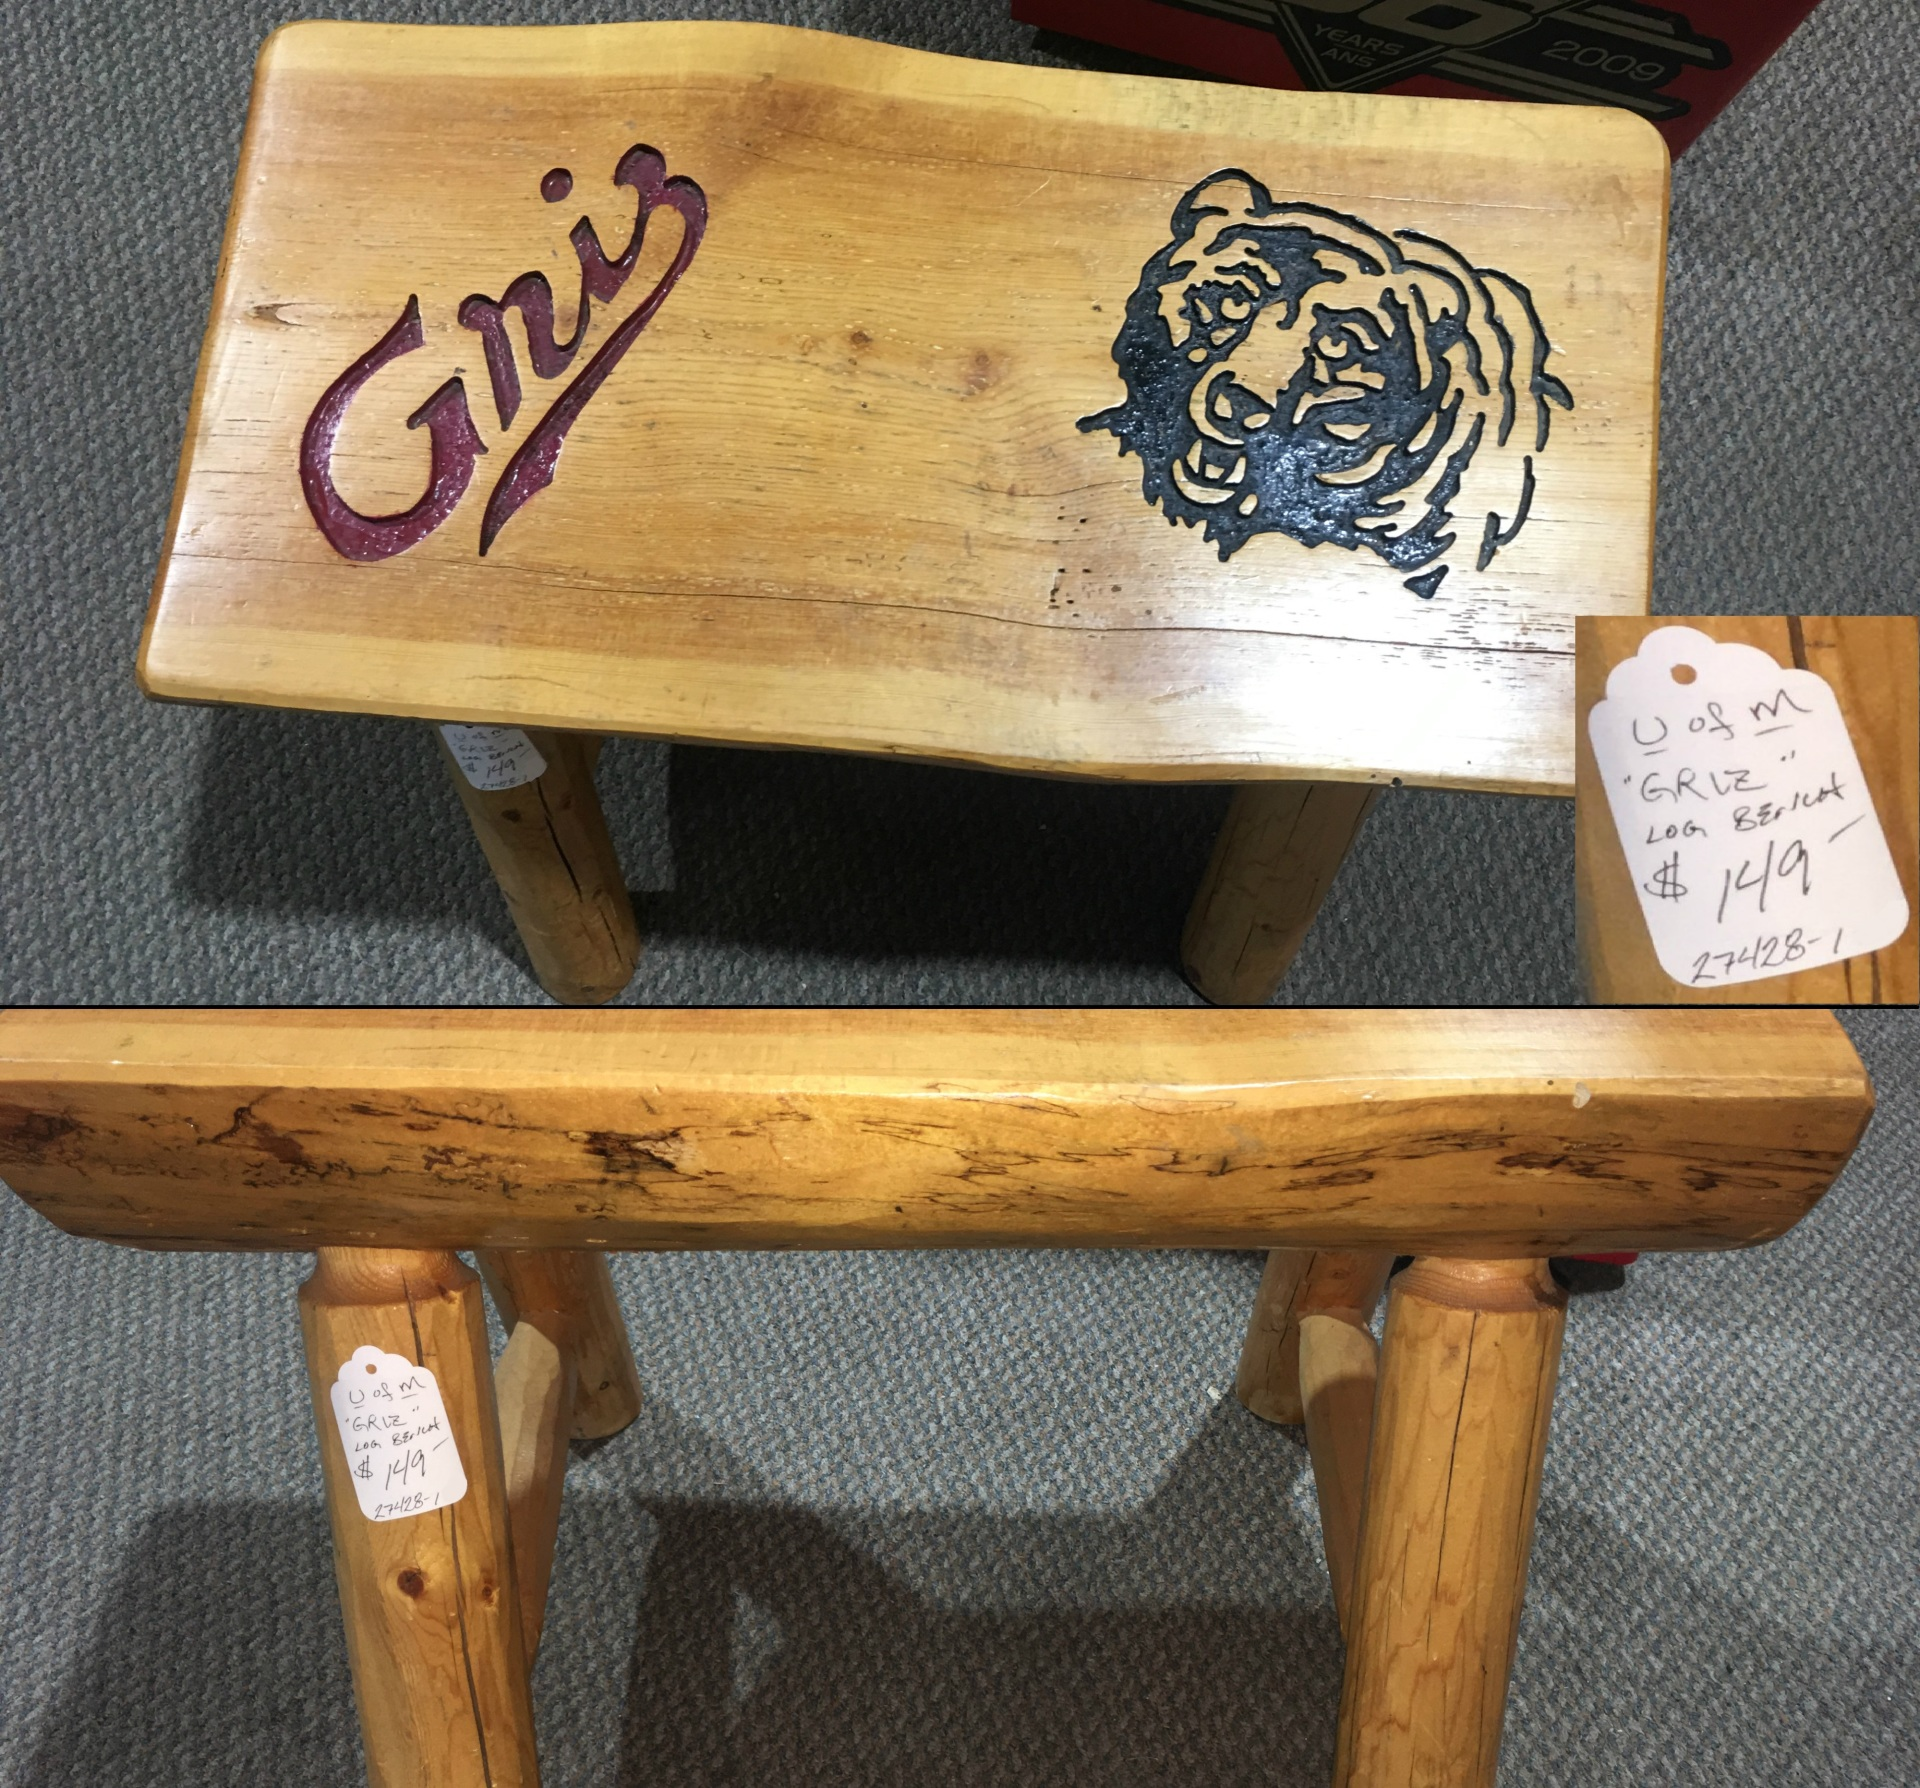 HANDCRAFTED GRIZ BENCH